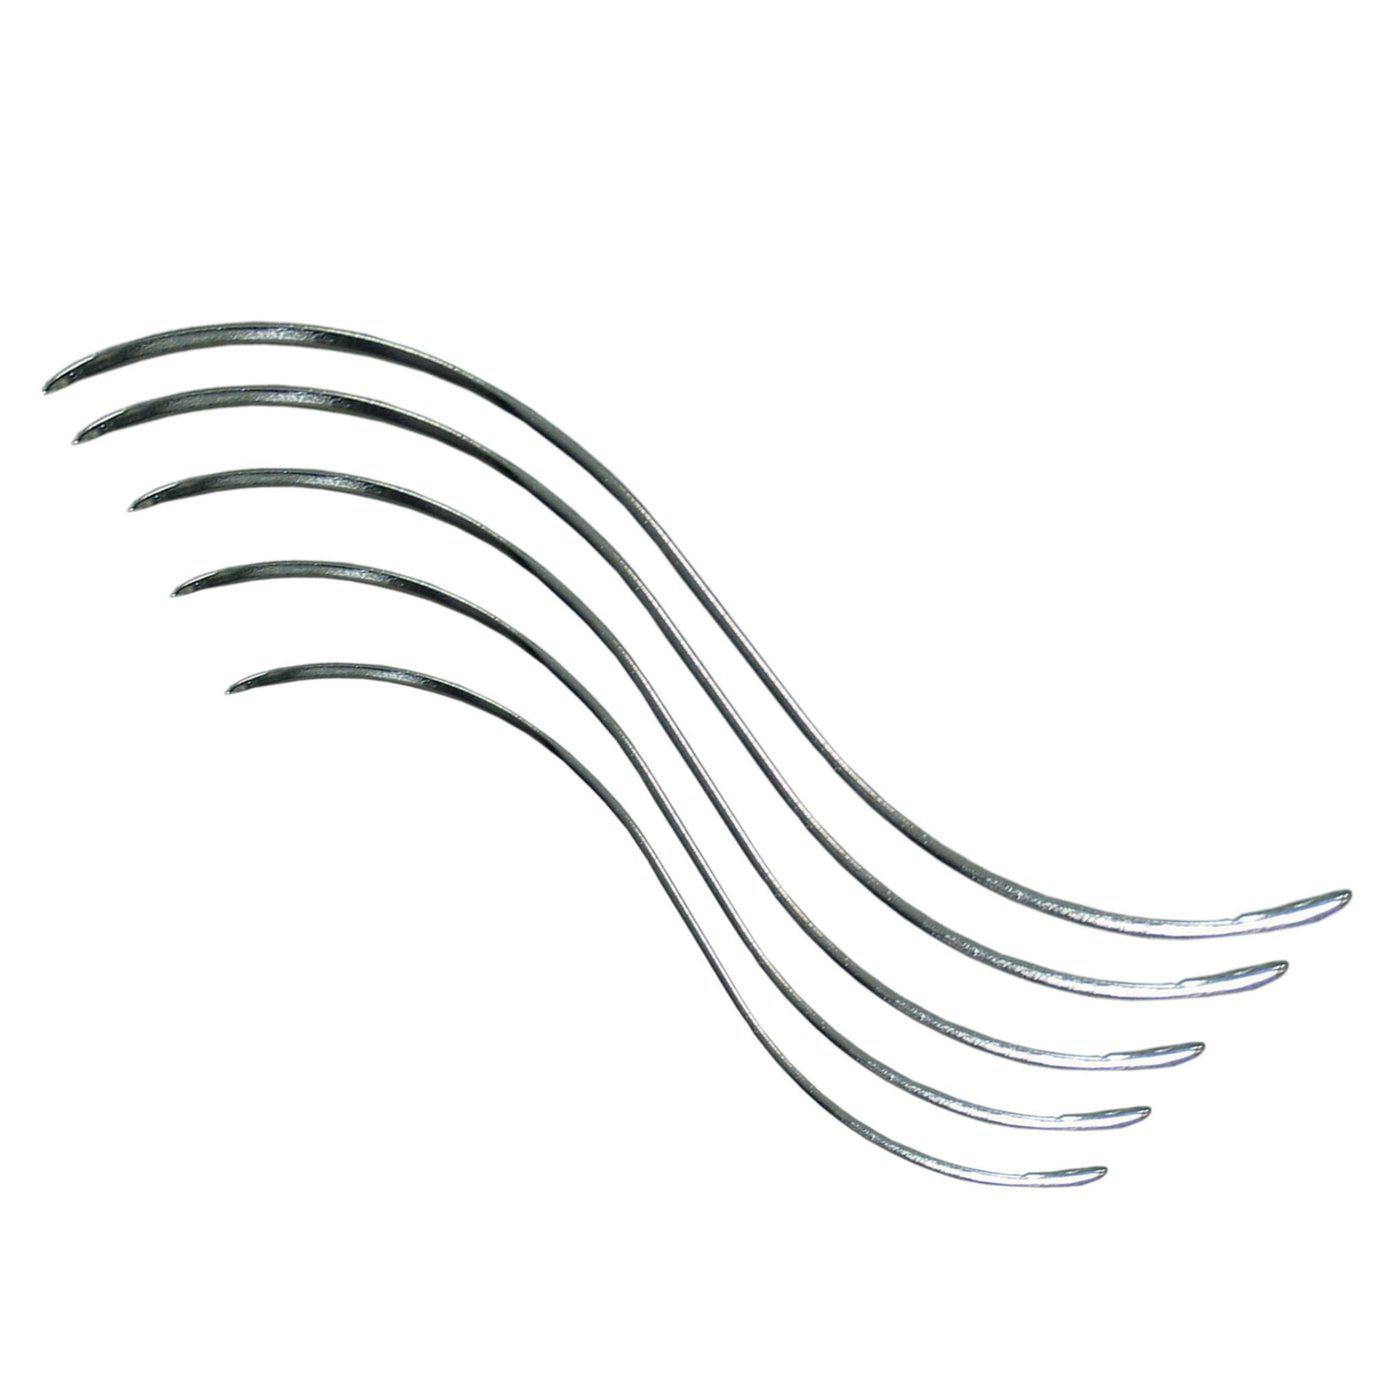 Postmortem Needles-Dissecting Instruments-Mortech Manufacturing Company Inc. Quality Stainless Steel Autopsy, Morgue, Funeral Home, Necropsy, Veterinary / Anatomy, Dissection Equipment and Accessories